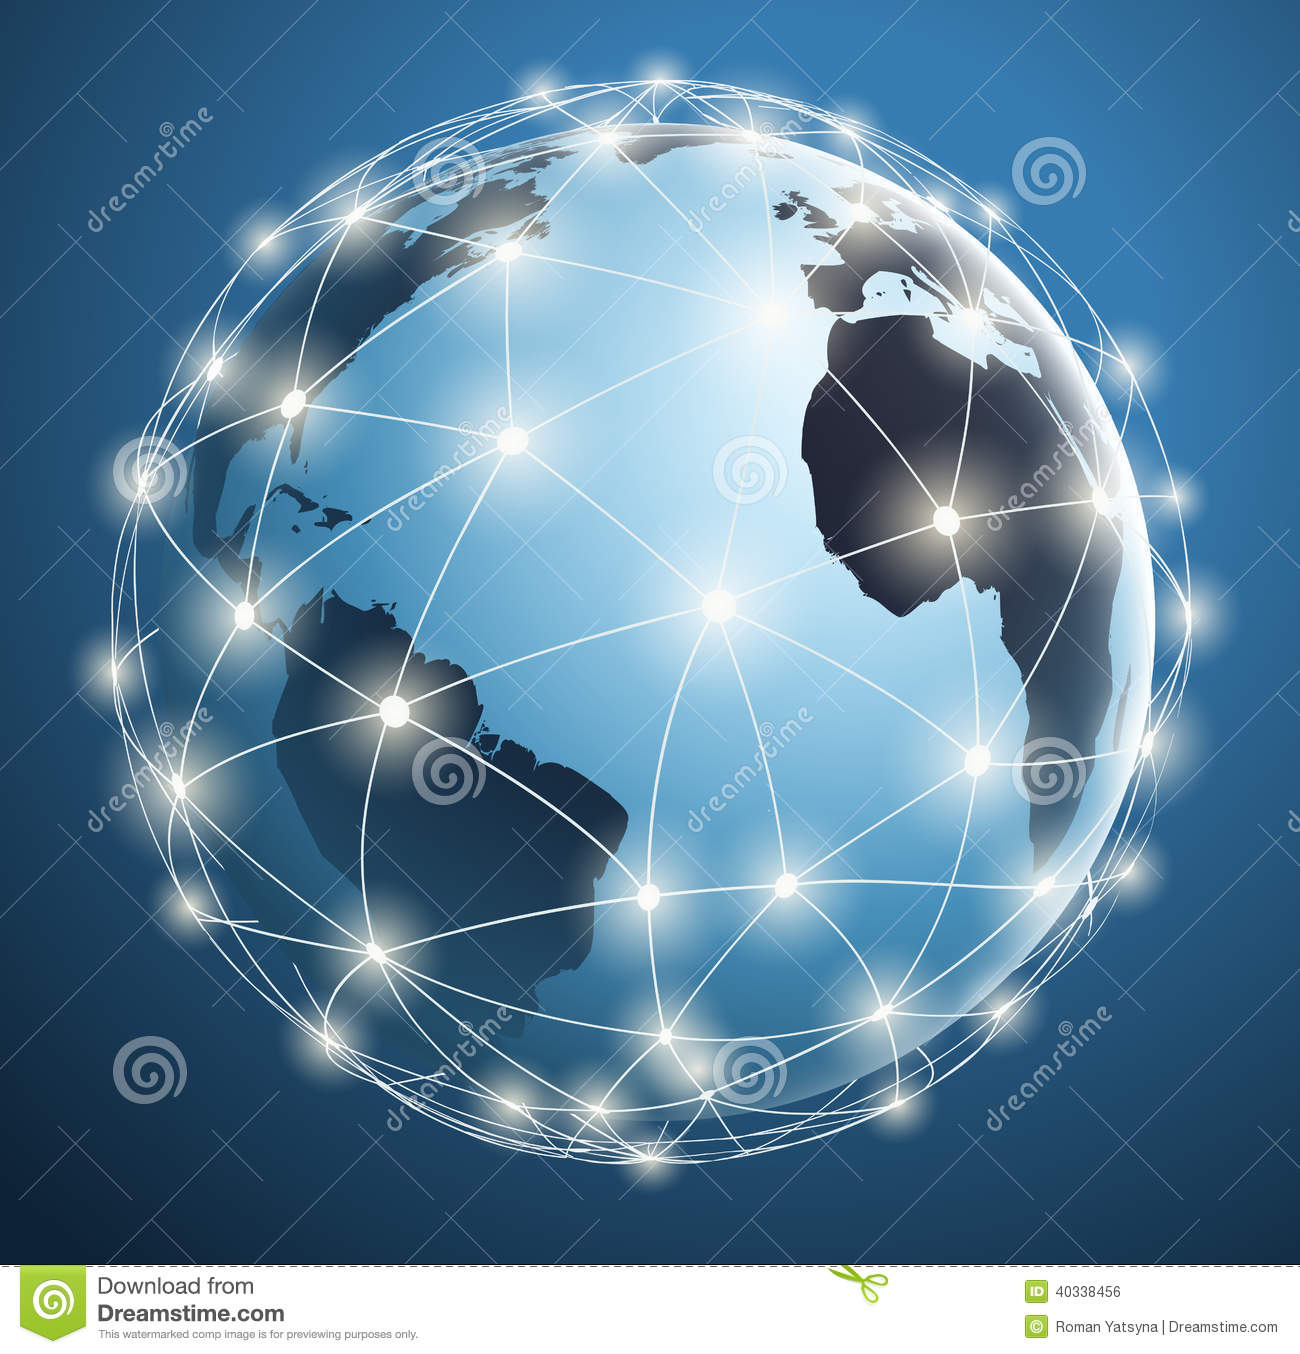 Royalty Free Stock Image Global  works Digital Connections Around World Map Illustration Image40338456 on wire connection symbol